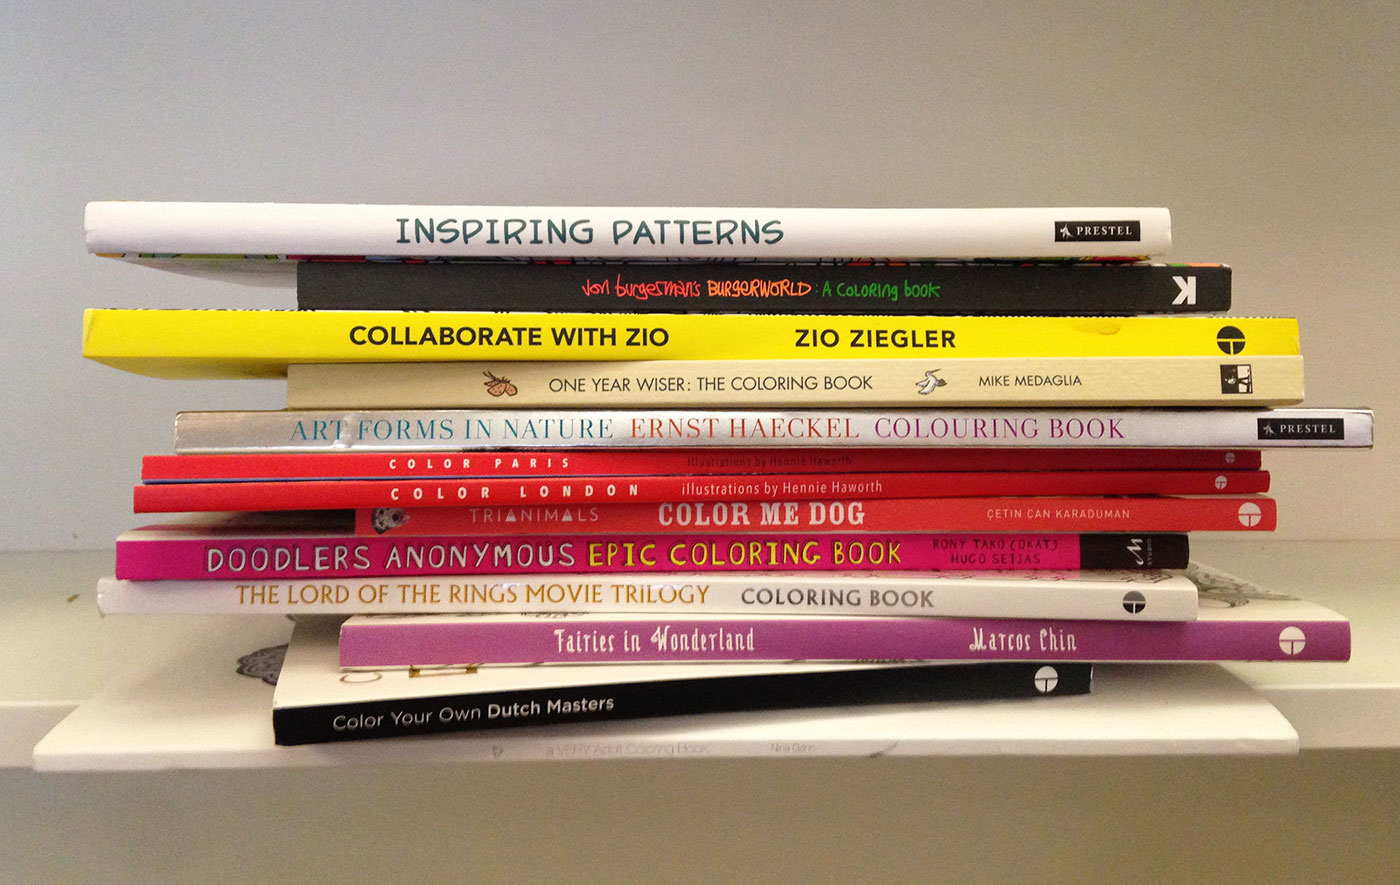 Coloring books sent to the Hyperallergic office